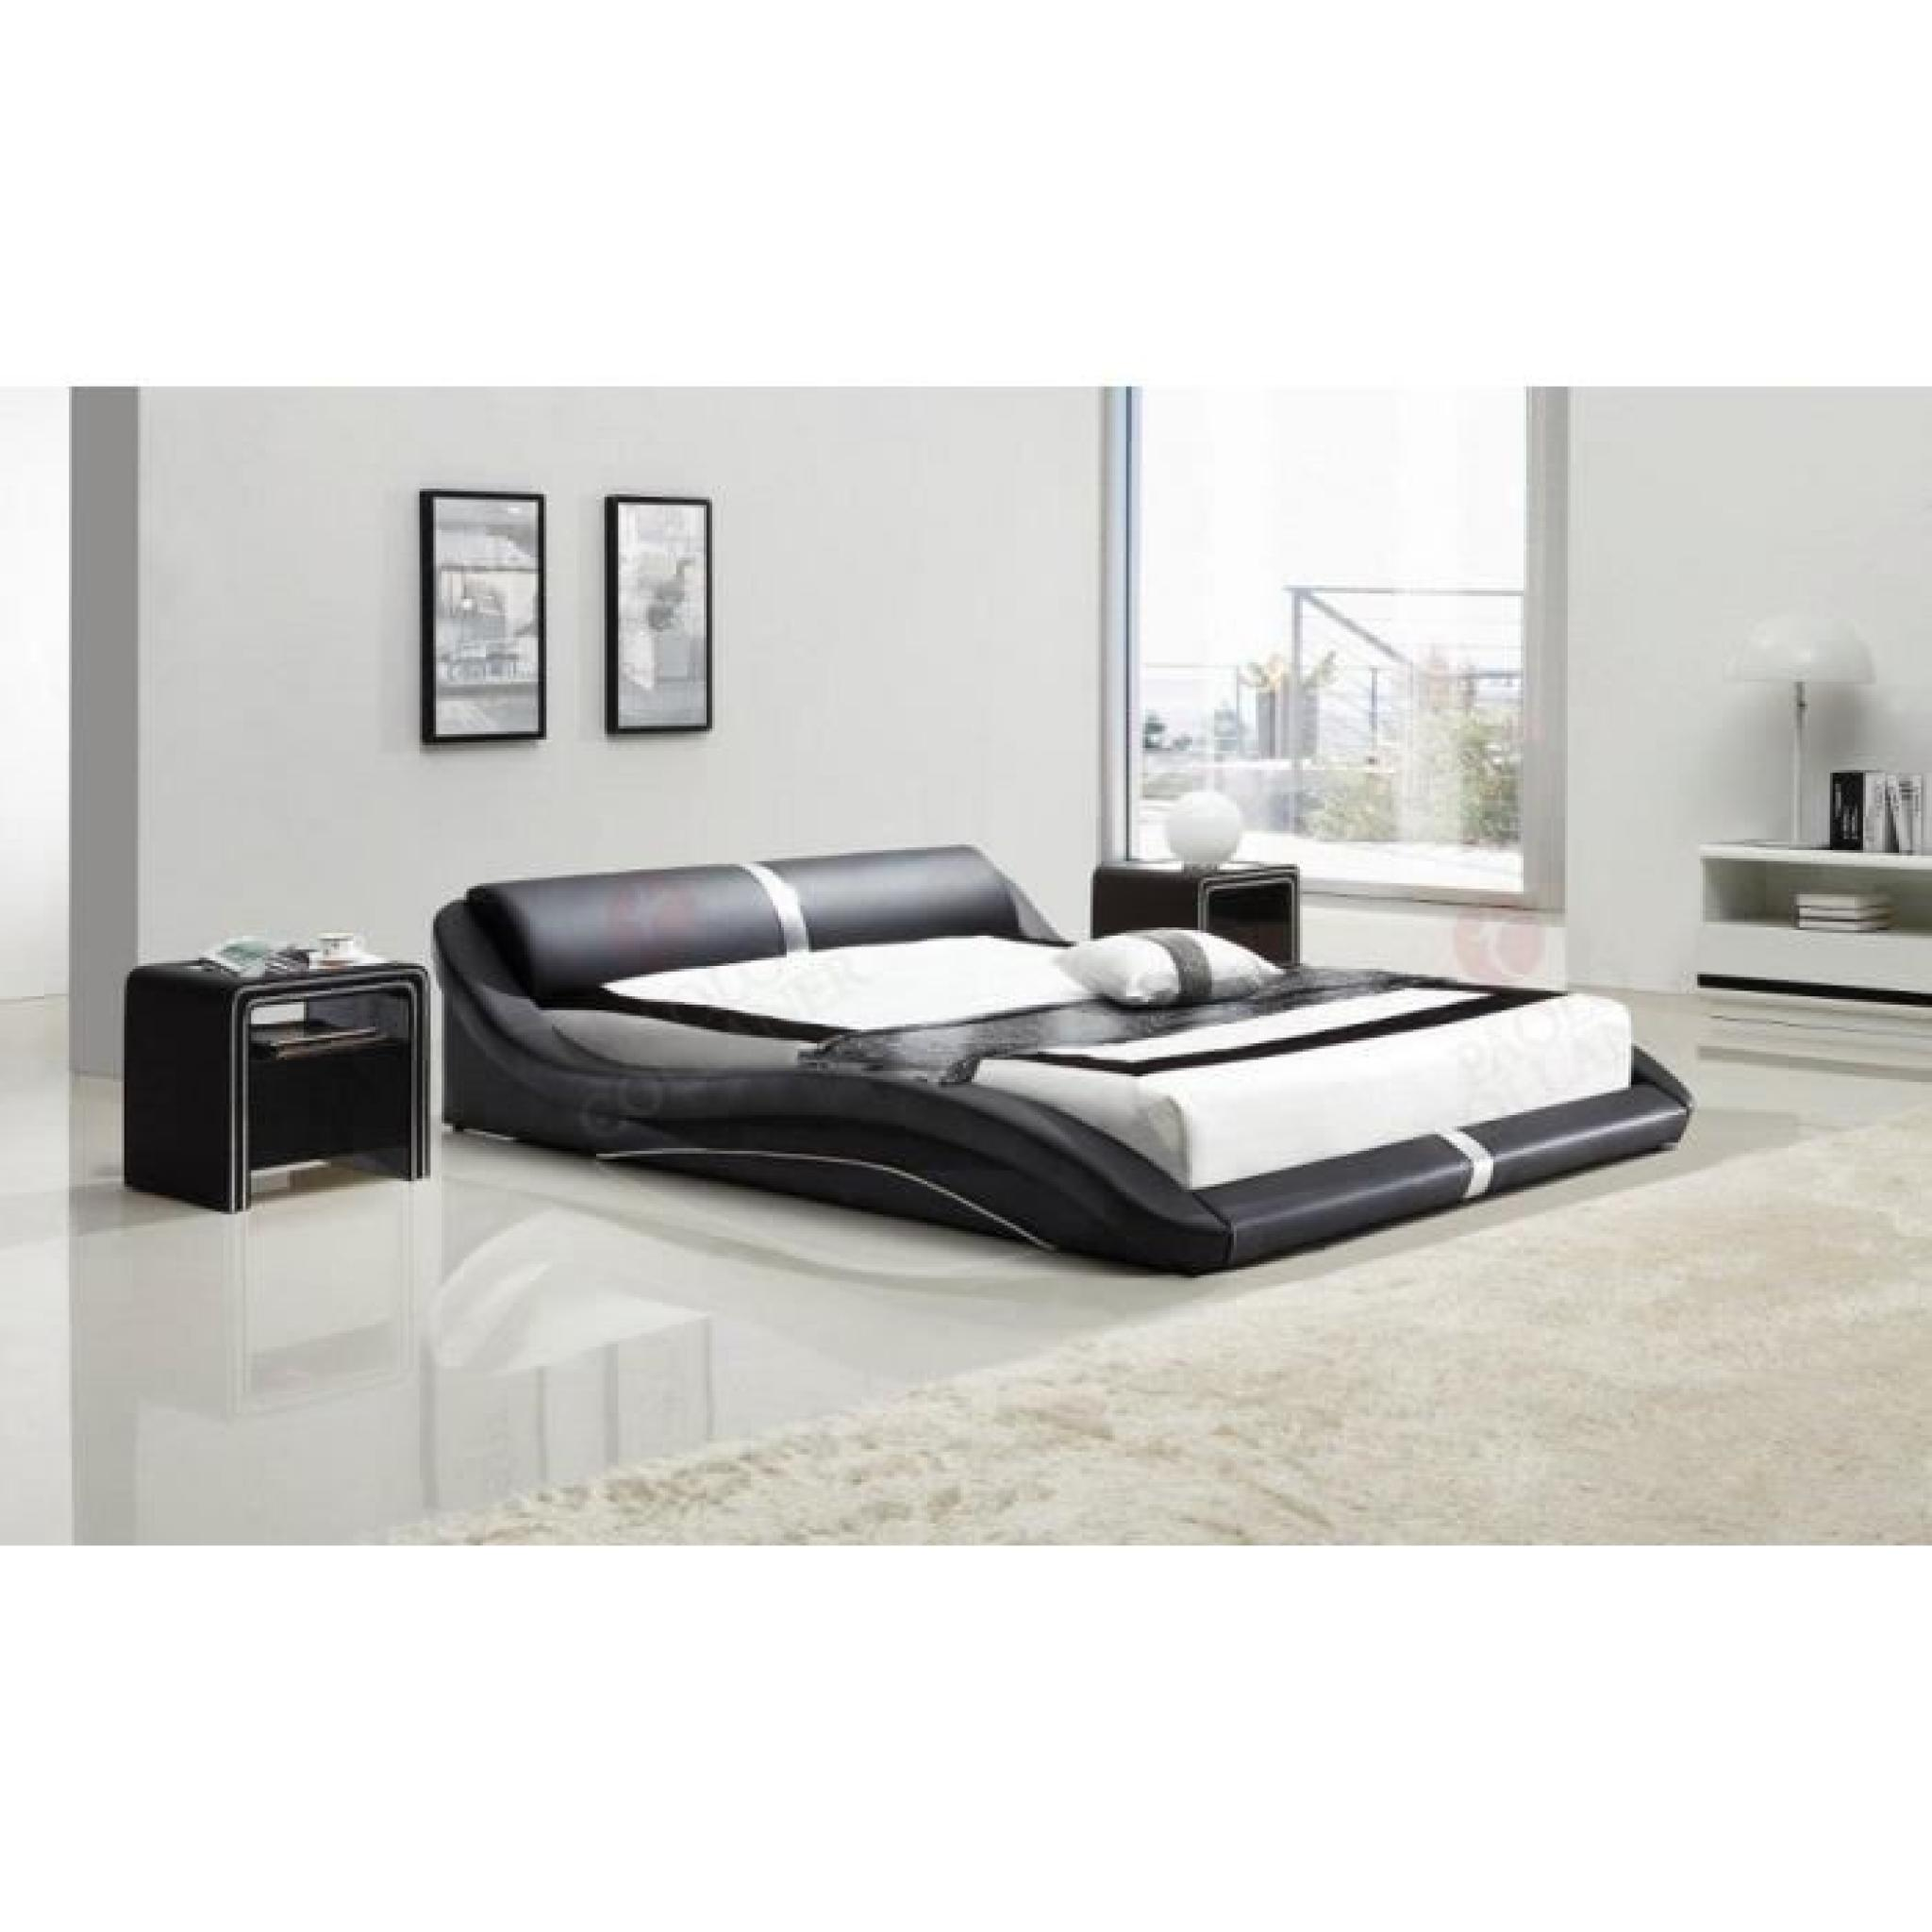 lit en similicuir noir 160x200 cm pl0b 58 achat vente. Black Bedroom Furniture Sets. Home Design Ideas